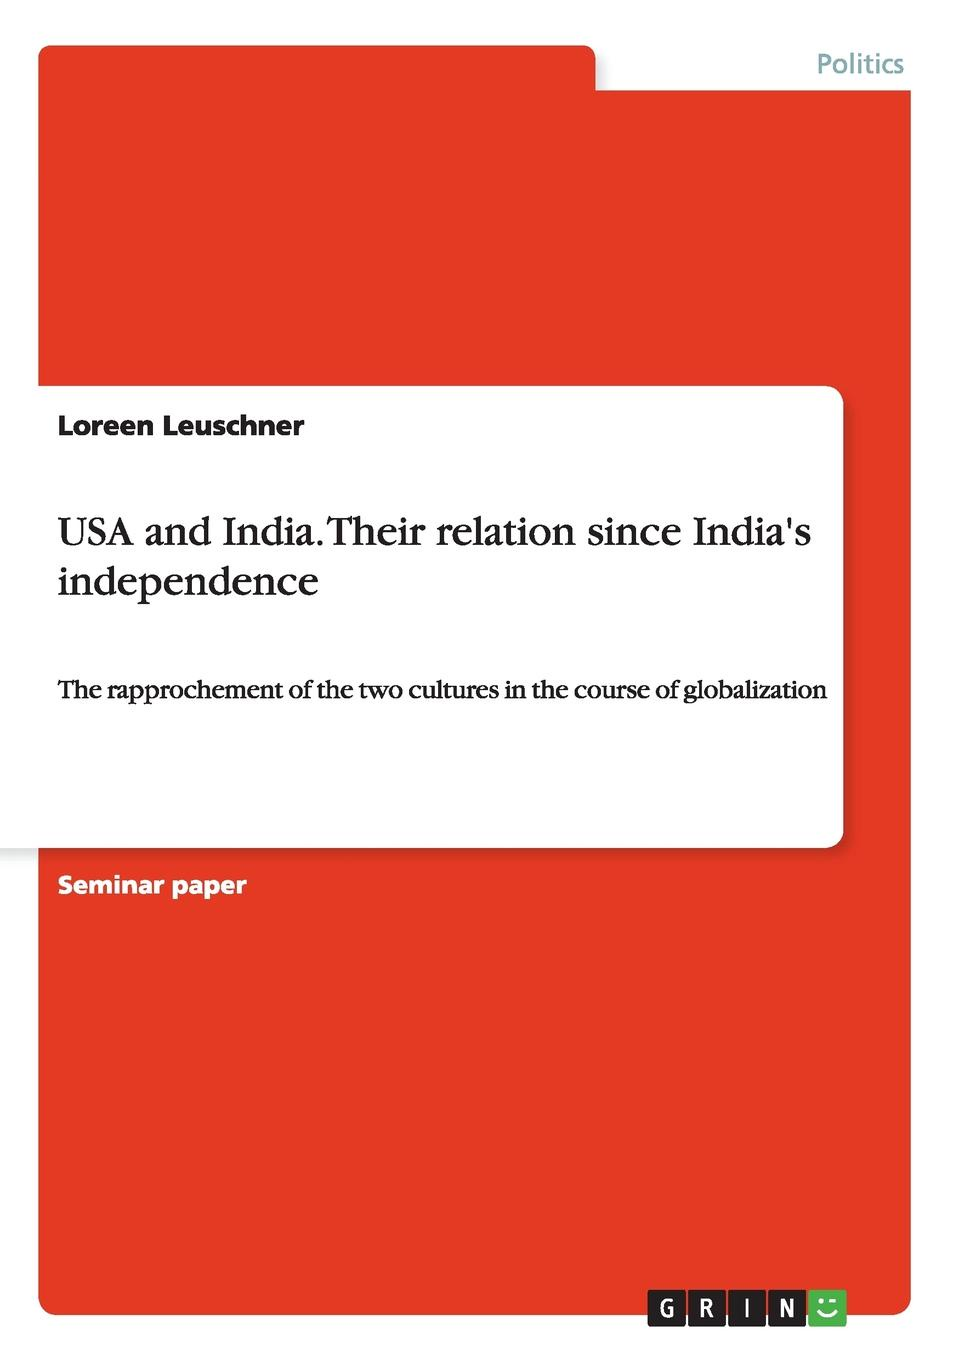 Loreen Leuschner USA and India. Their relation since India.s independence lloyd s kramer nationalism in europe and america politics cultures and identities since 1775